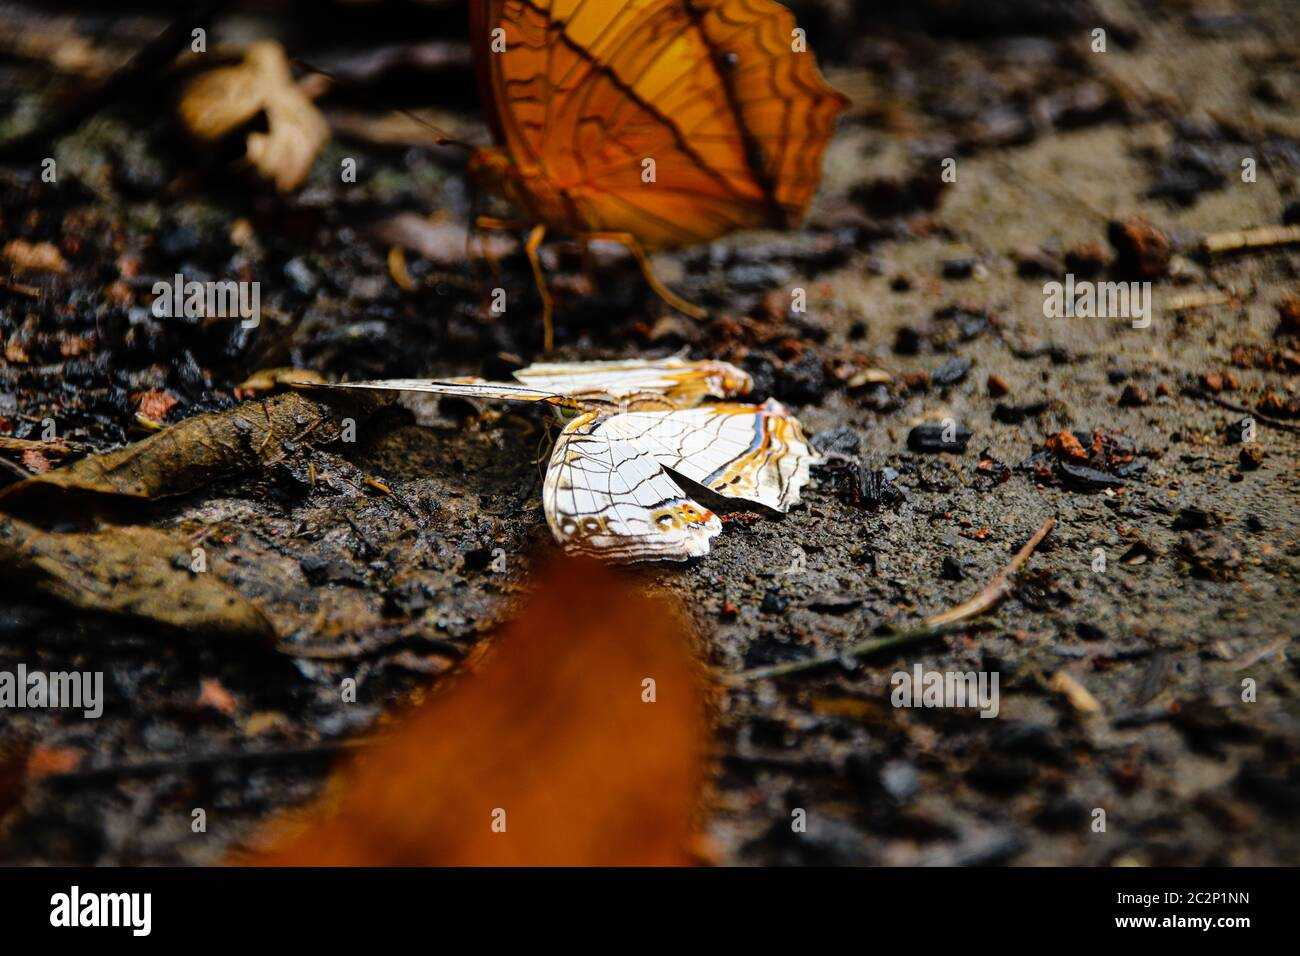 A dead butterfly on the ground showing the concept of balance between life and death in nature Stock Photo